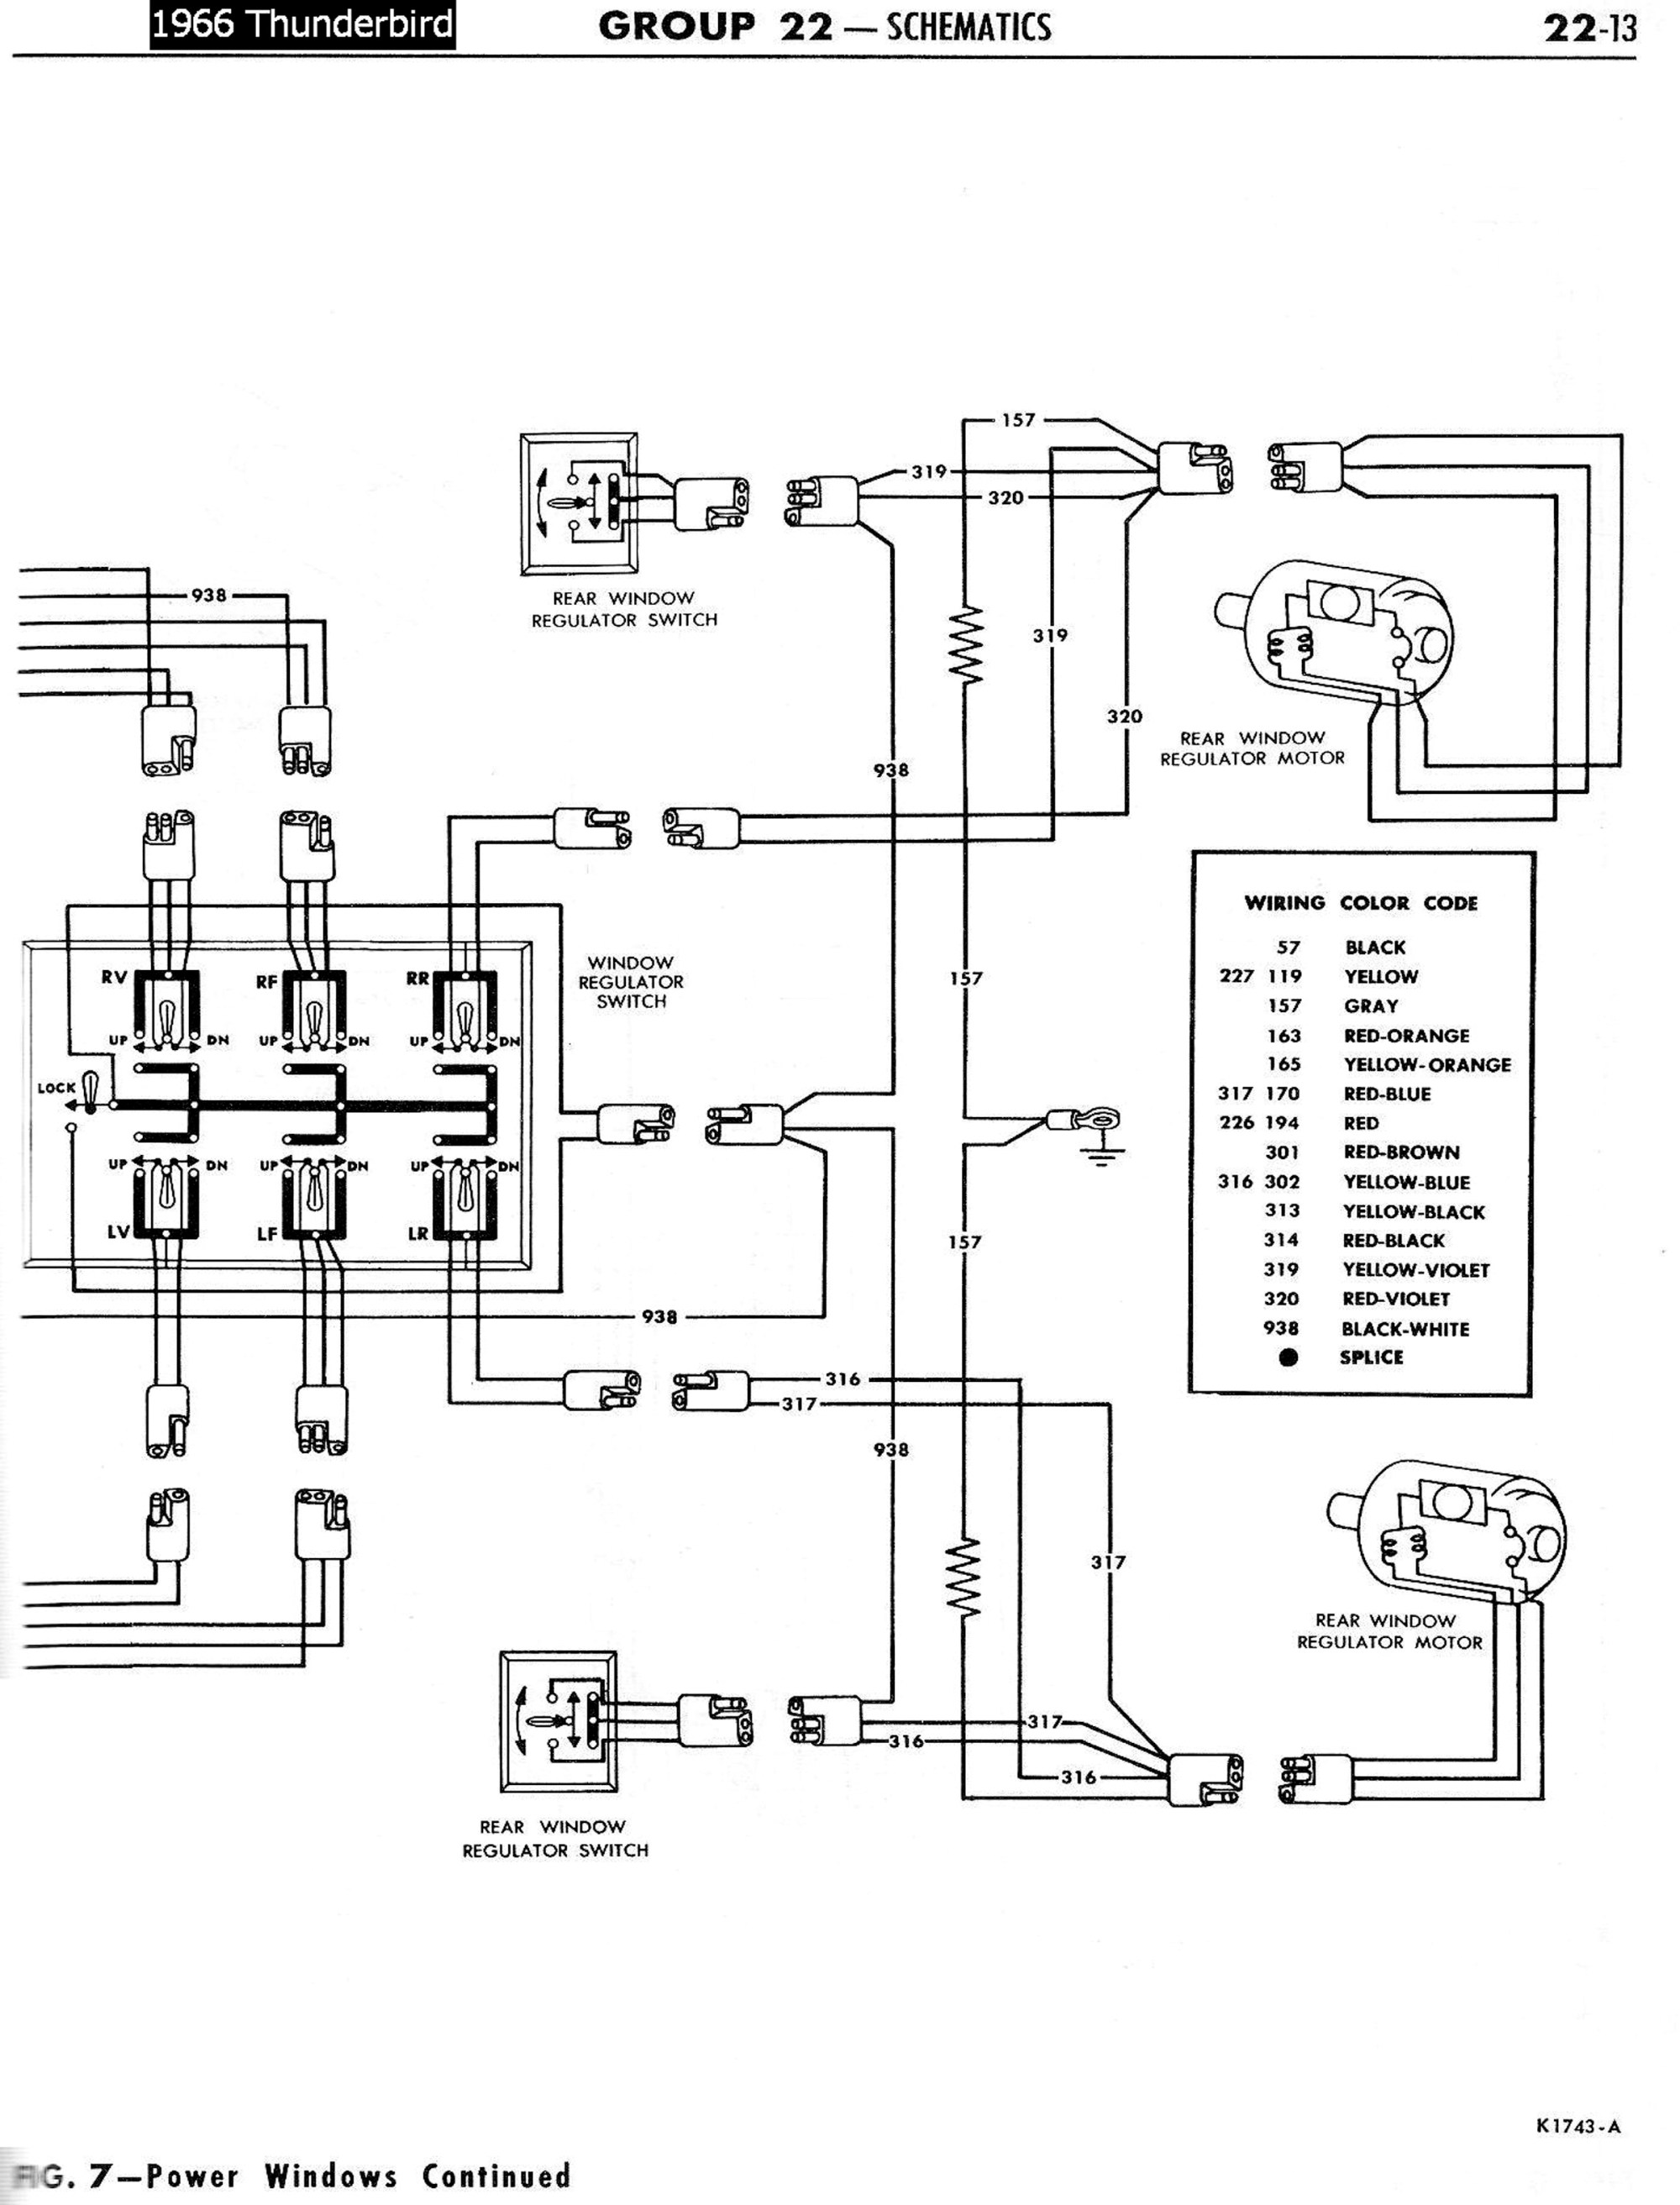 hight resolution of 1956 thunderbird wiring diagram 1957 wiring diagram rows 1956 thunderbird wiring diagram 1957